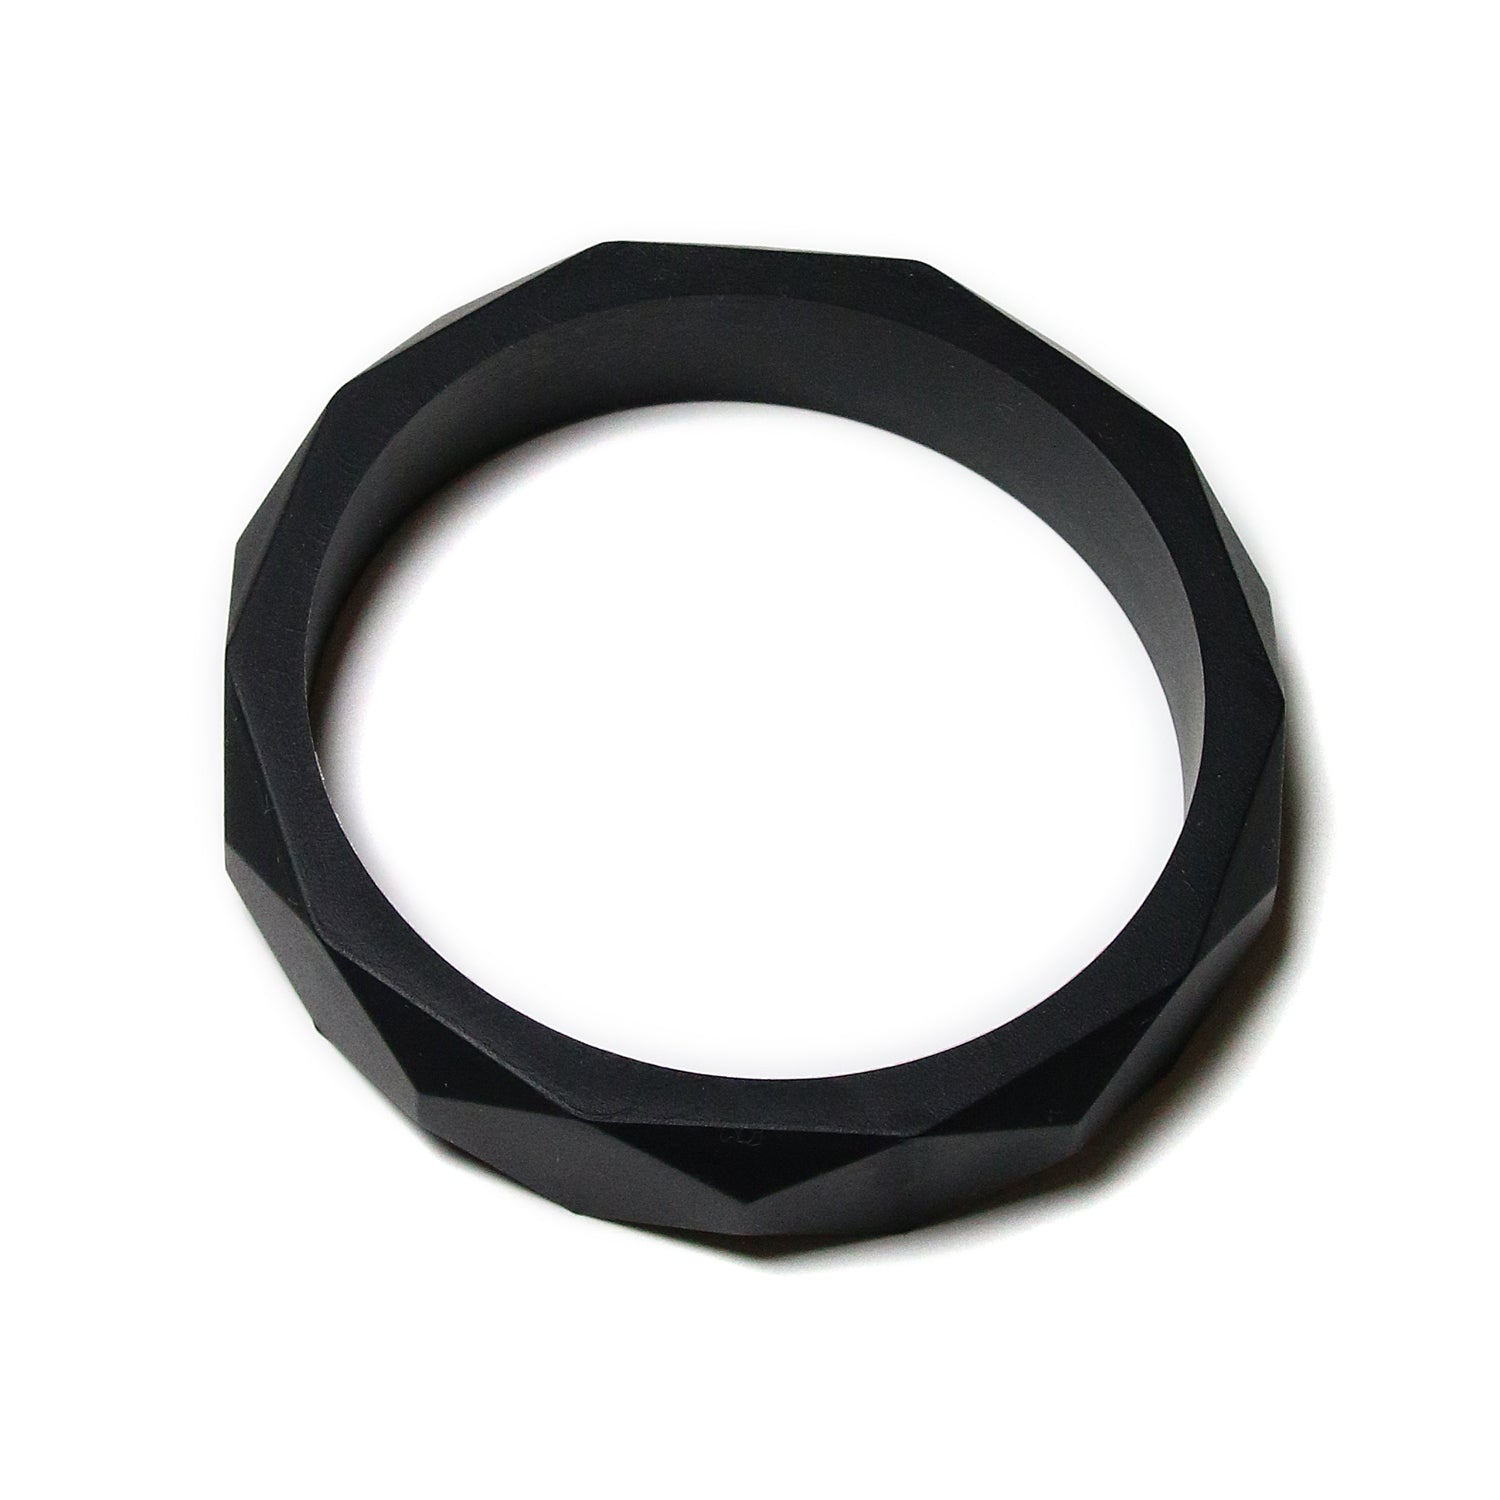 Finley Black Silicone Teething Jewelry